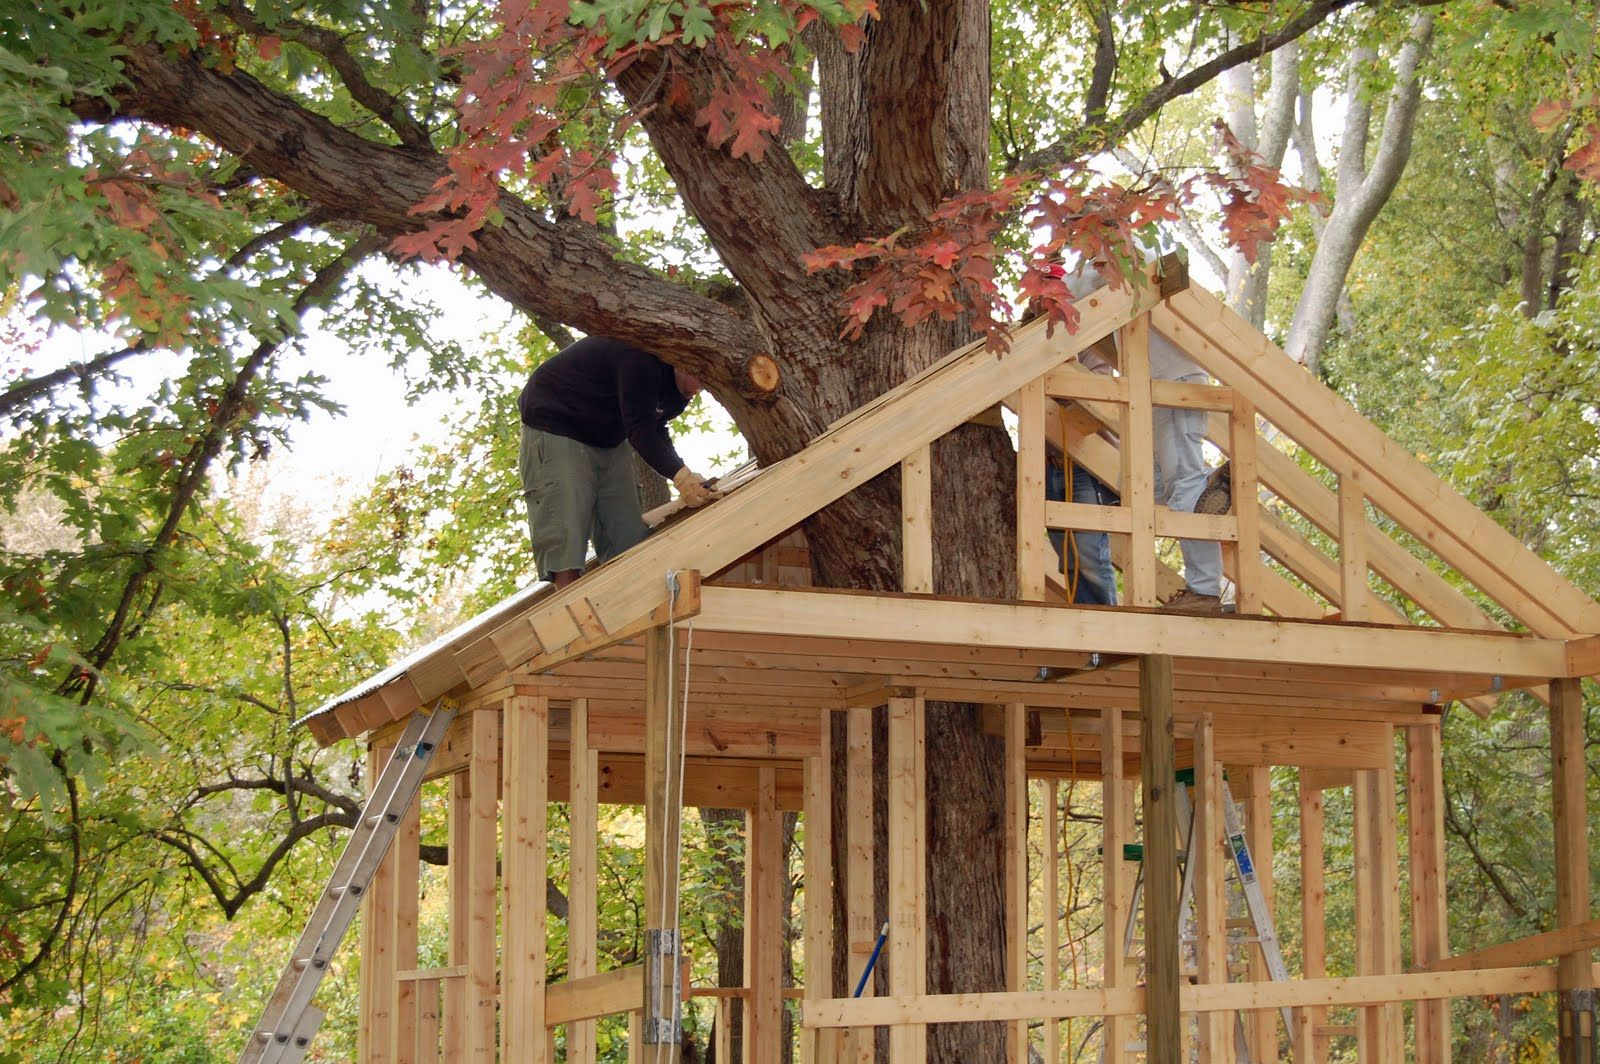 17 Best 1000 images about Tree house ideas on Pinterest House design